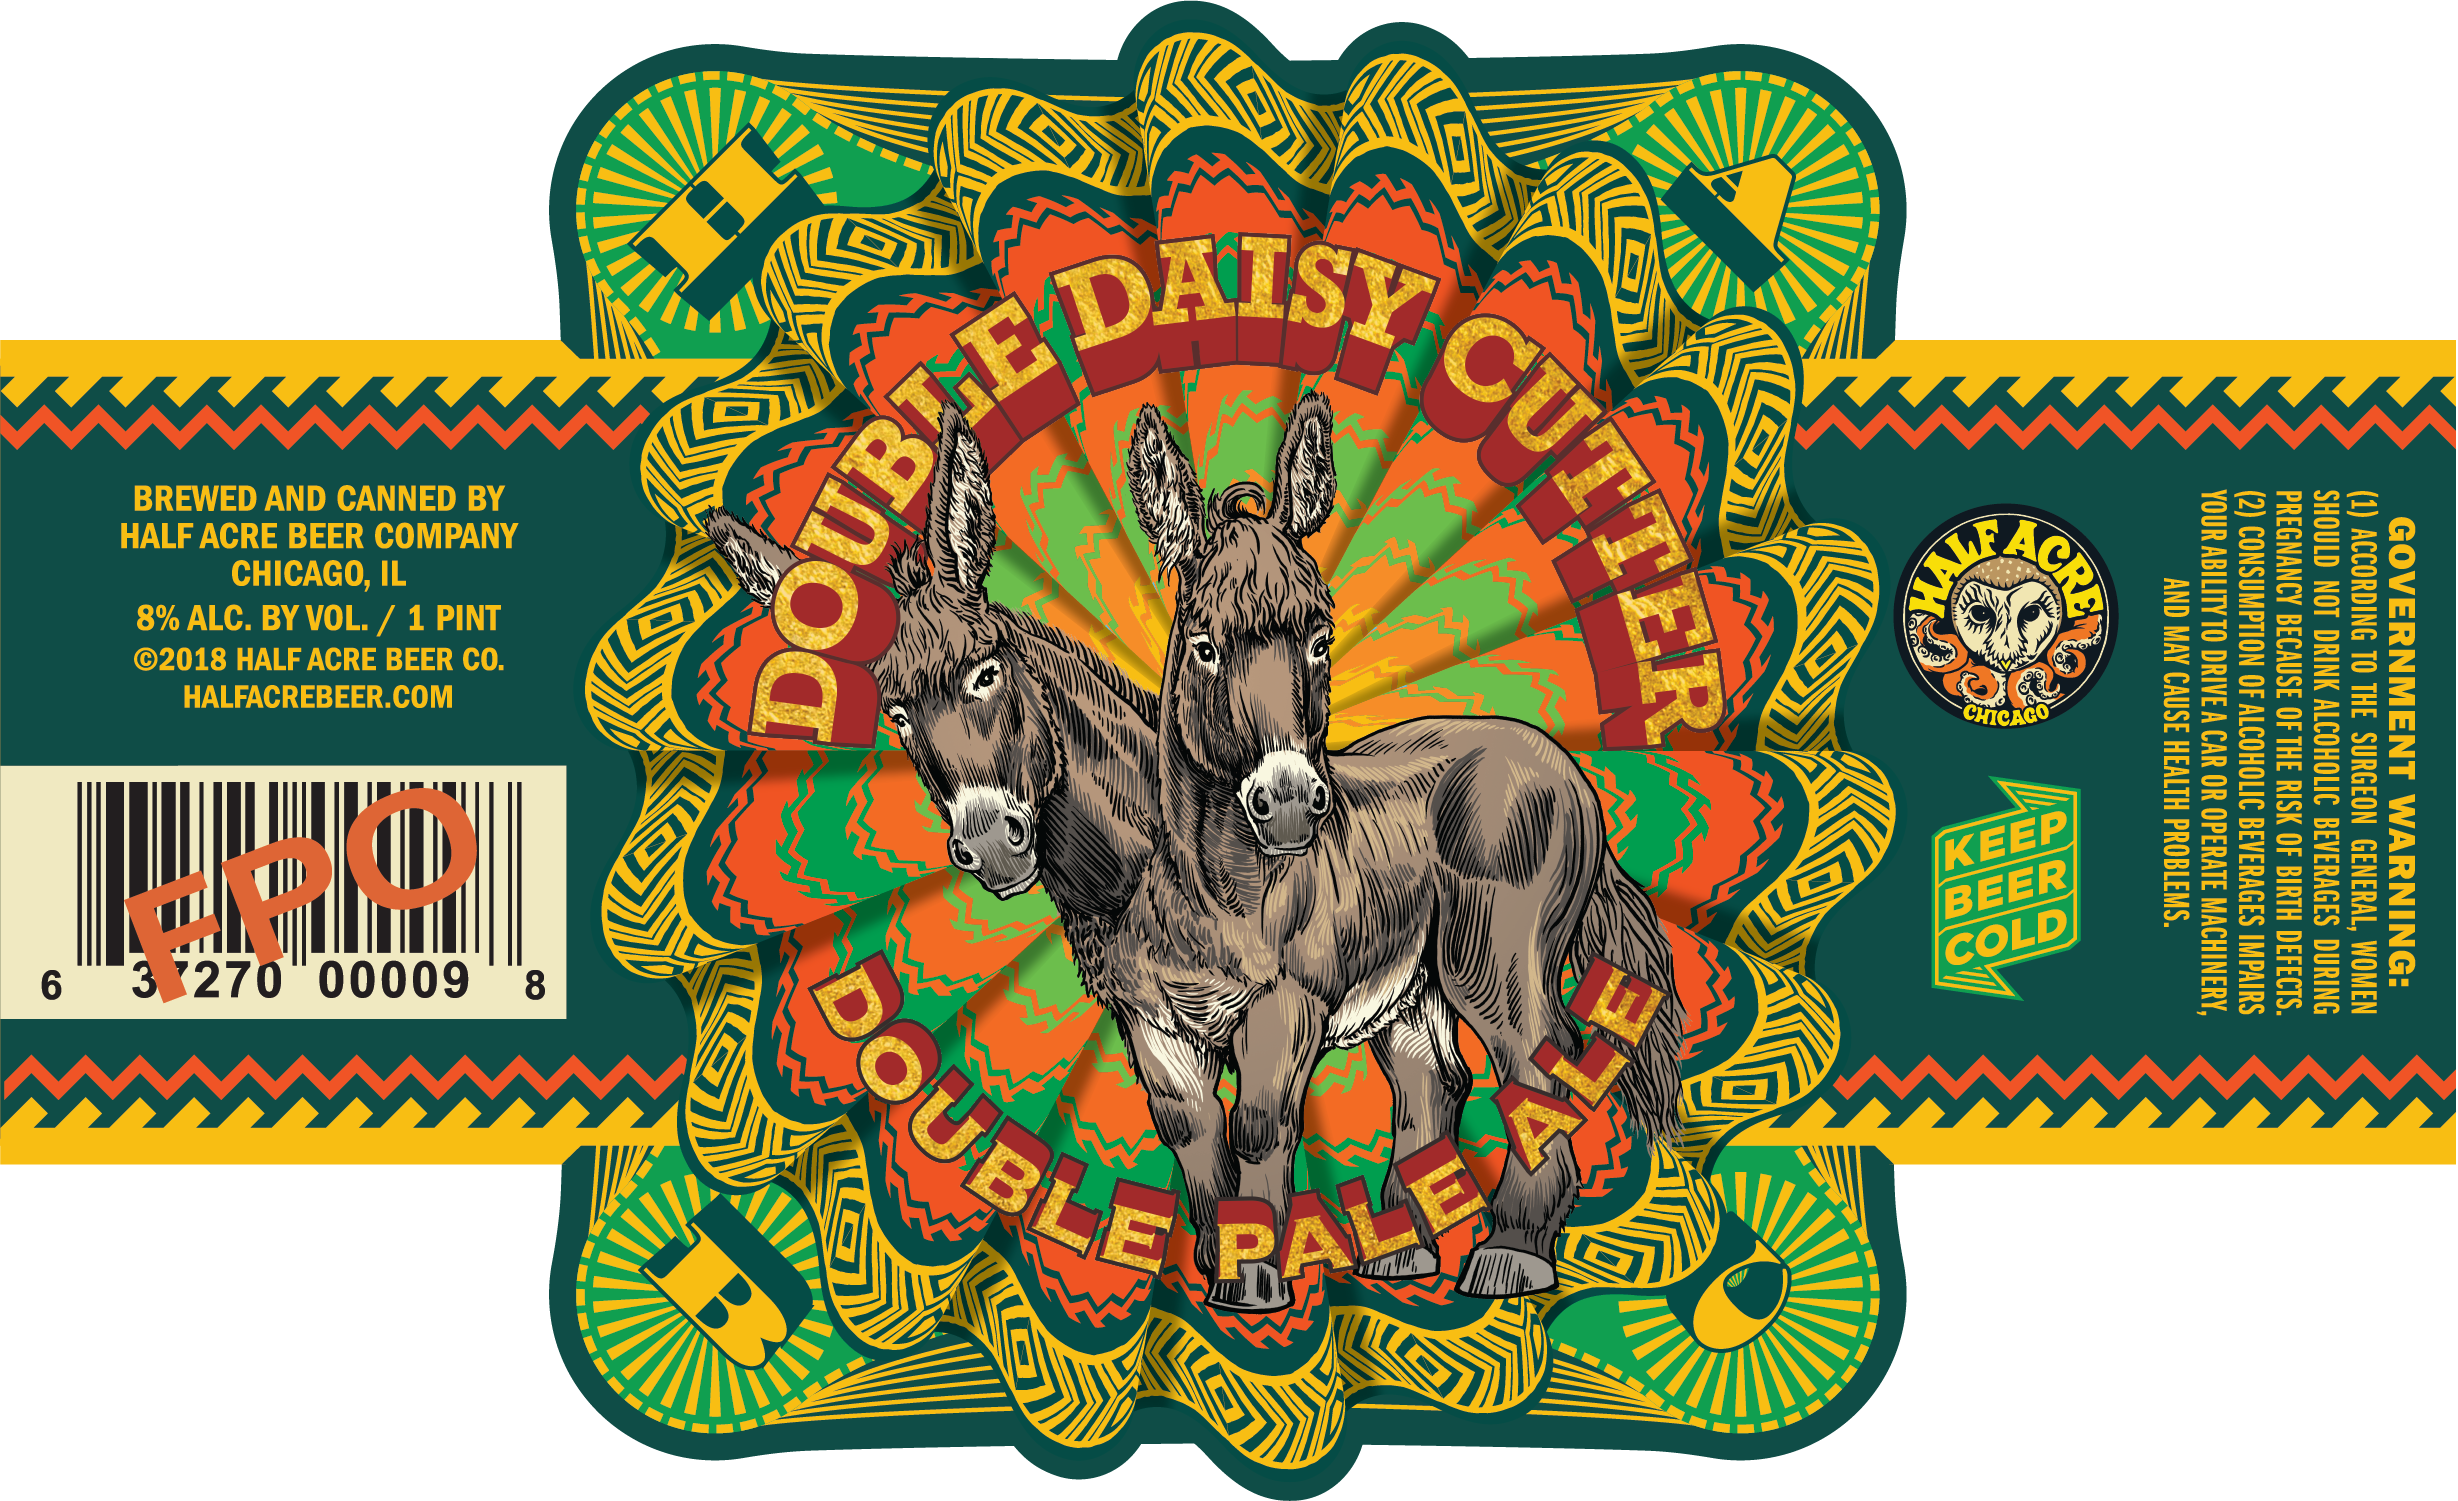 Double Daisy Cutter 2017 Can Label